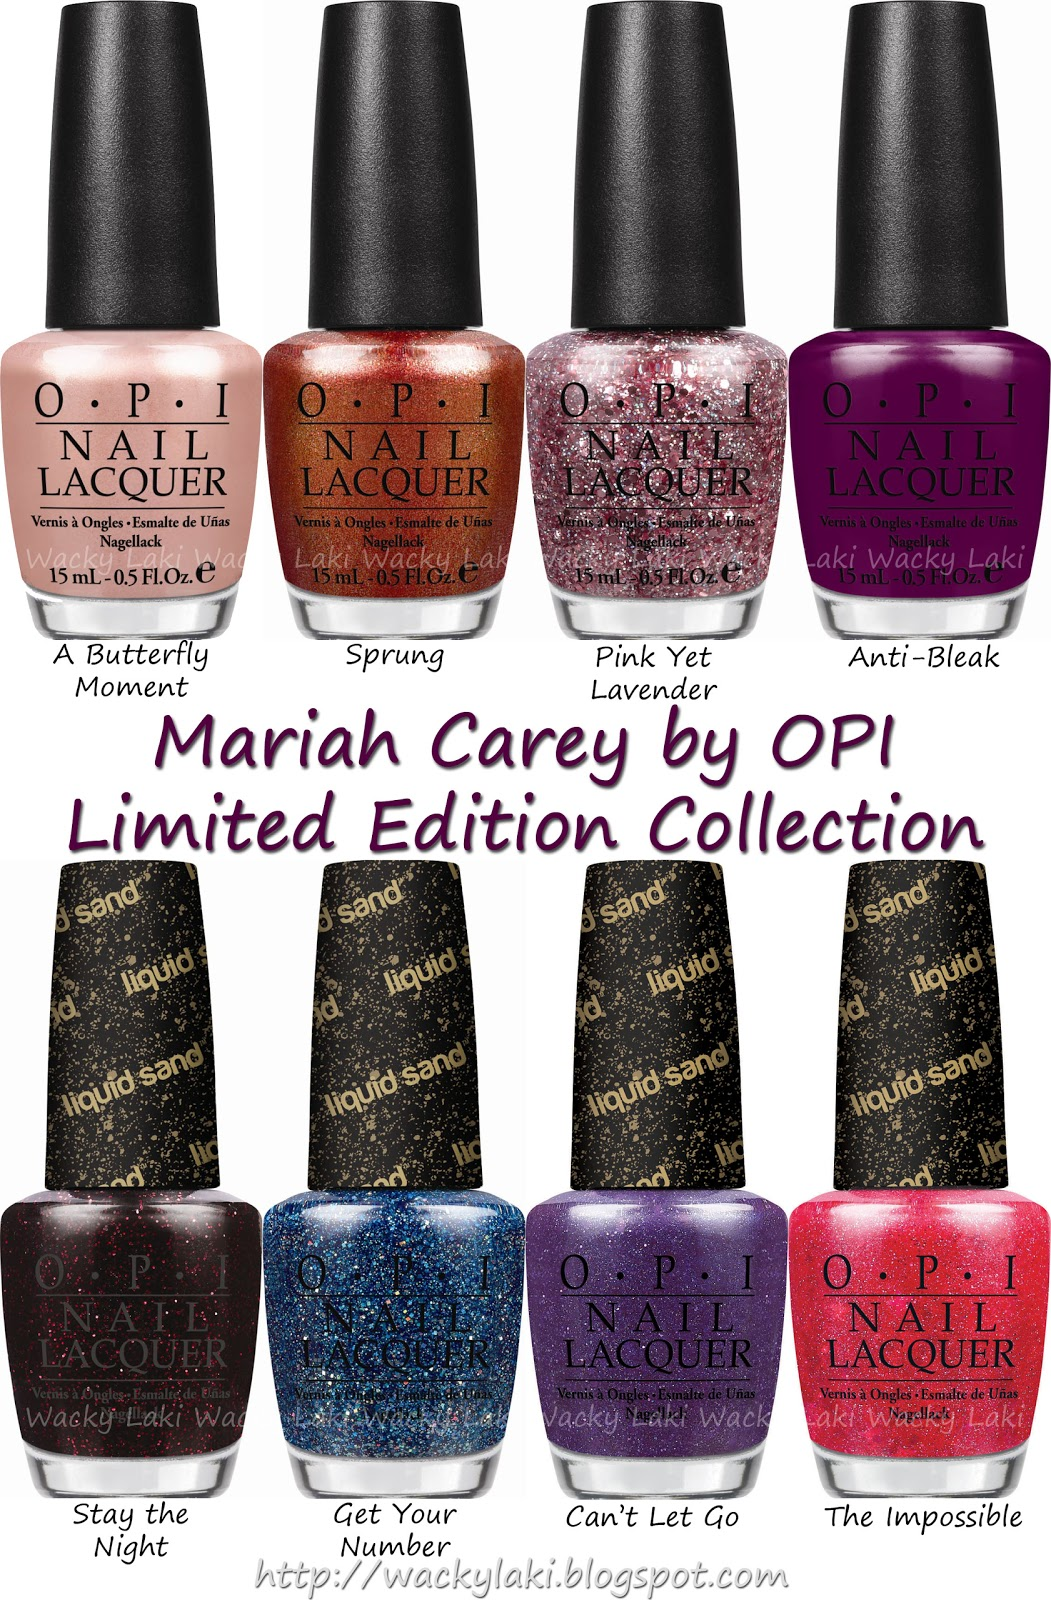 Wacky Laki: Press Release: Mariah Carey by OPI Collection